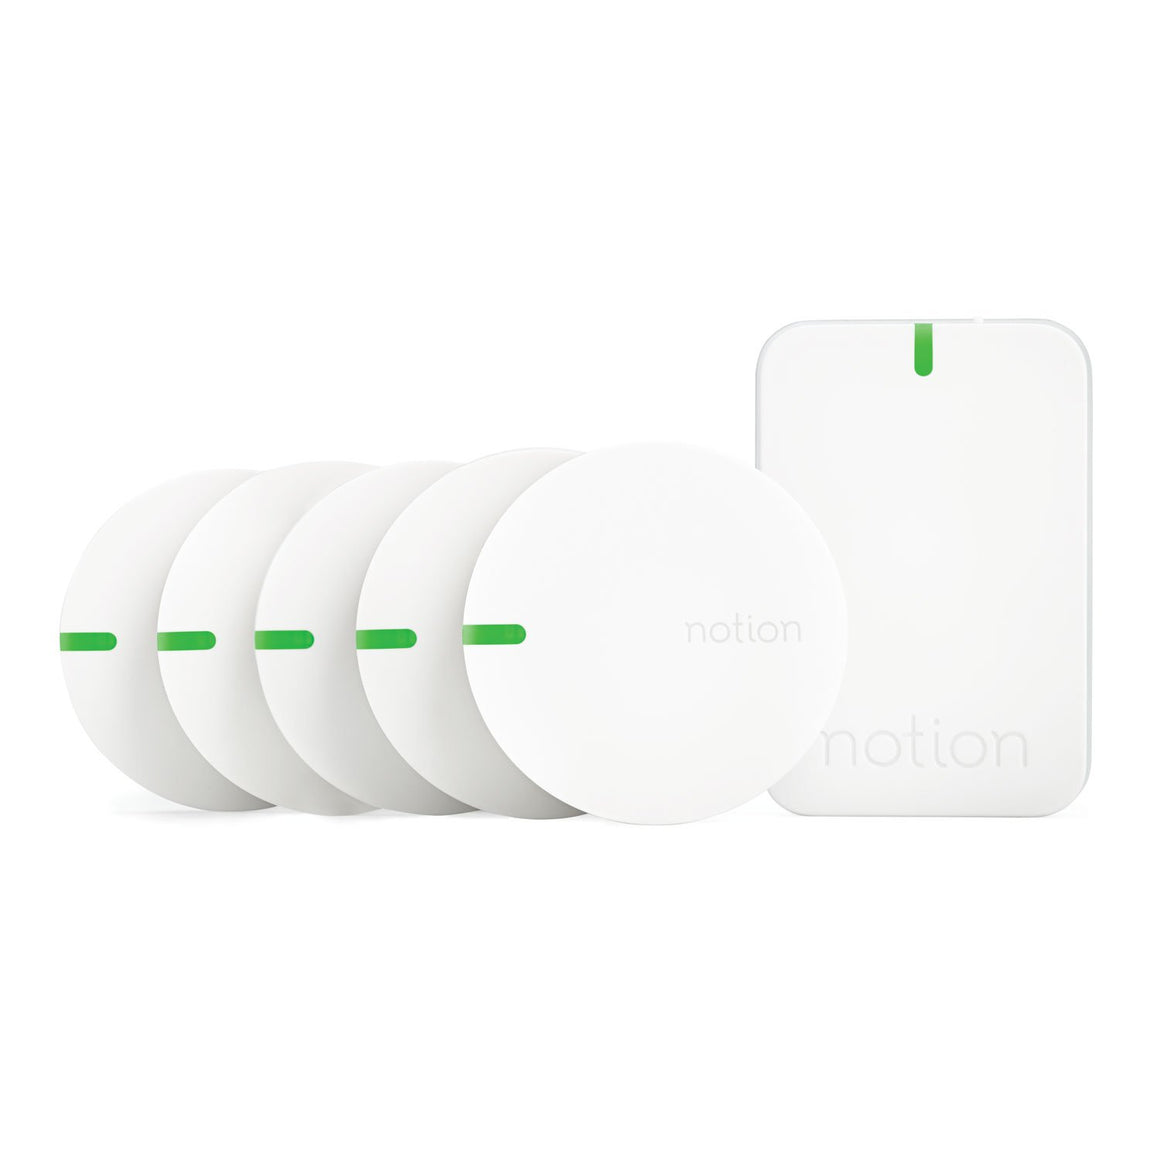 Notion 5 Sensors and Bridge